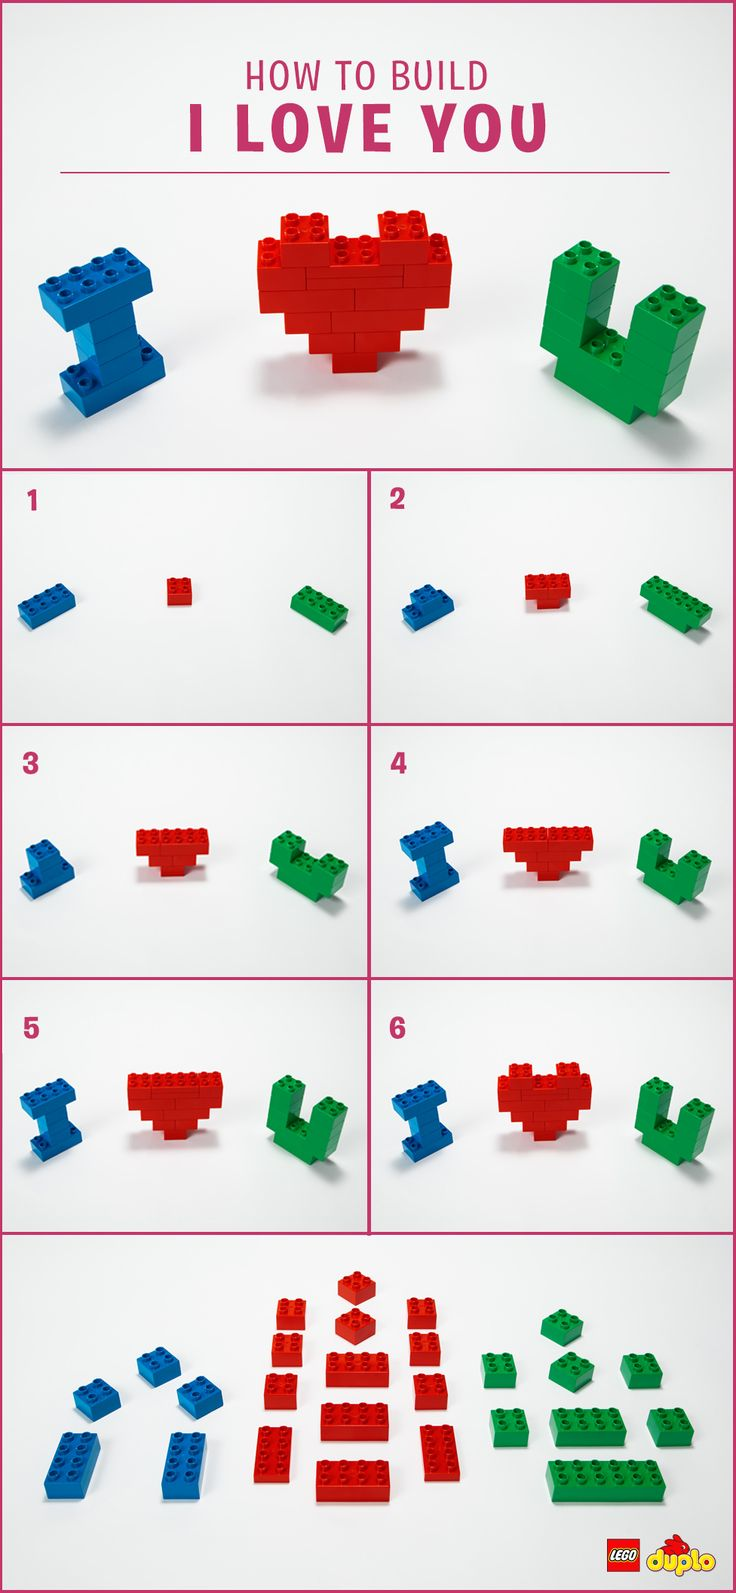 Whether they are big or small, why not remind that special someone in your life how much you care for them in a creative and fun way? <3 Check out our building instructions here: http://www.lego.com/en-us/family/articles/heart-melting-valentines-crafts-for-toddlers-2949acf1ebe14db6a8ff0a1b6cf95a30